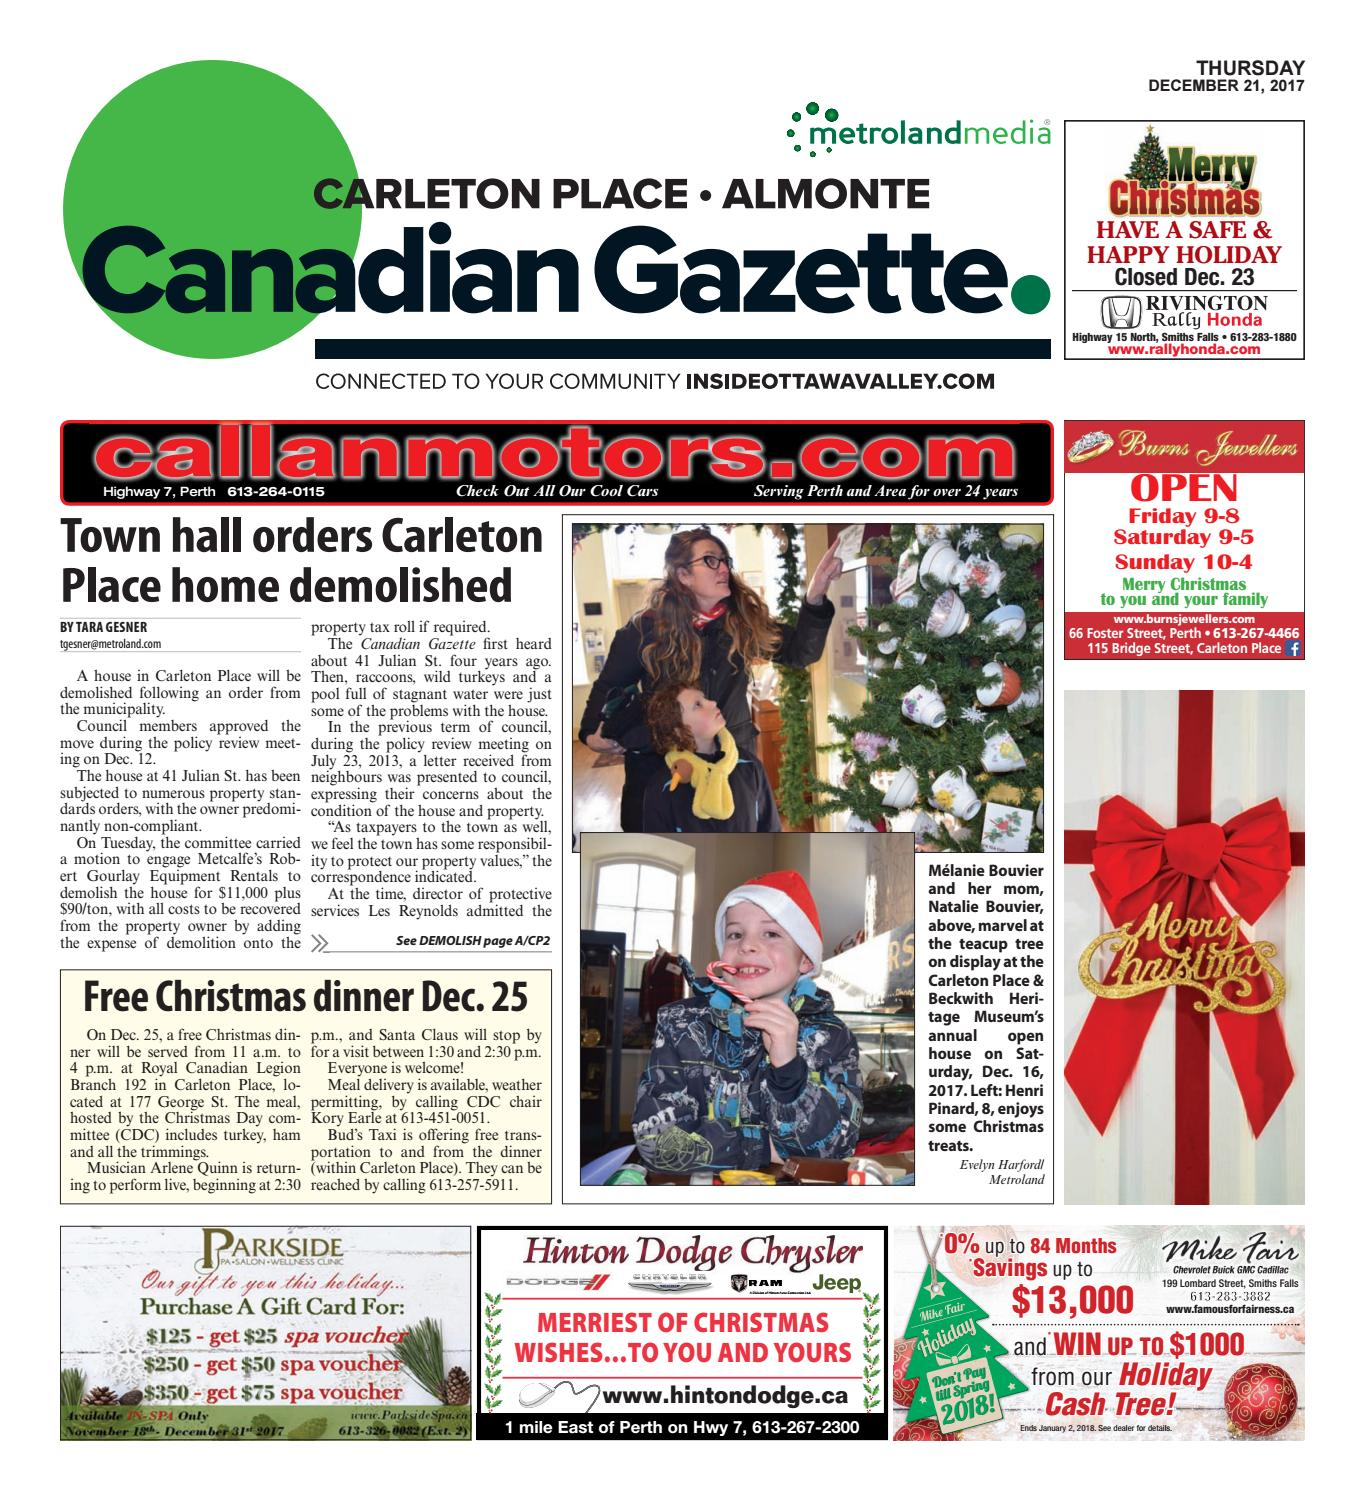 e89e4dee7a4 Almontecarletonplace122117 by Metroland East - Almonte Carleton Place  Canadian Gazette - issuu